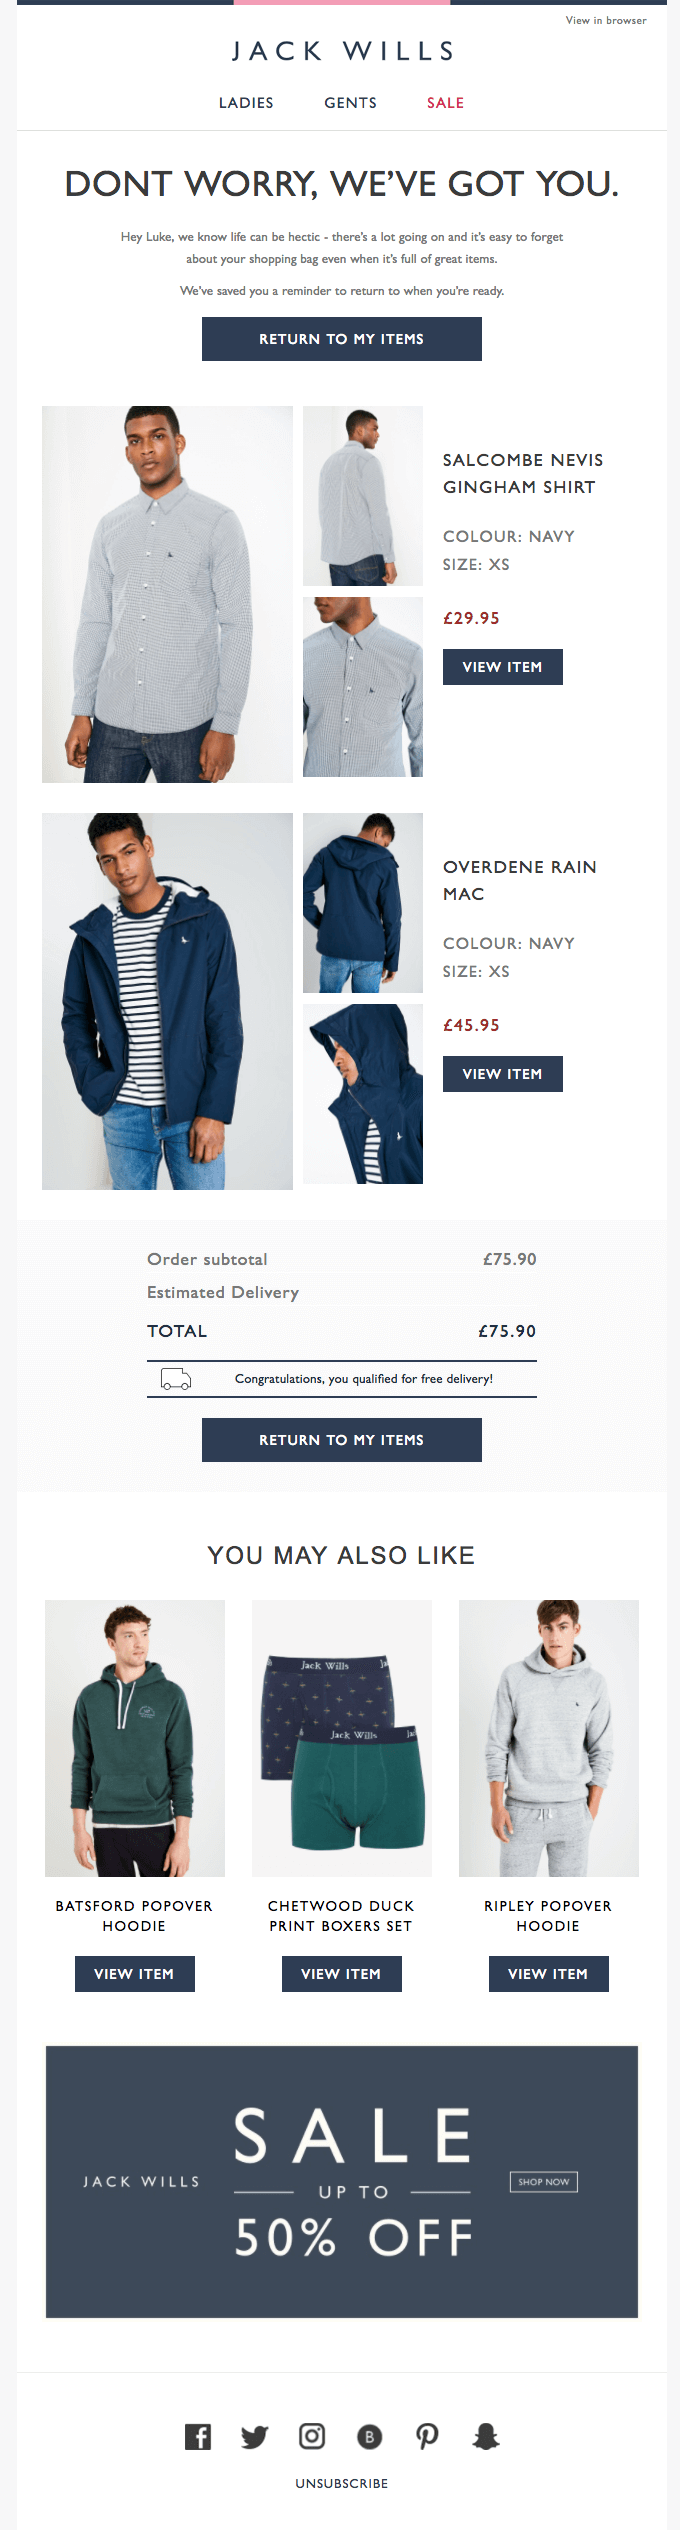 Jack Wills Cart Abandonment Email